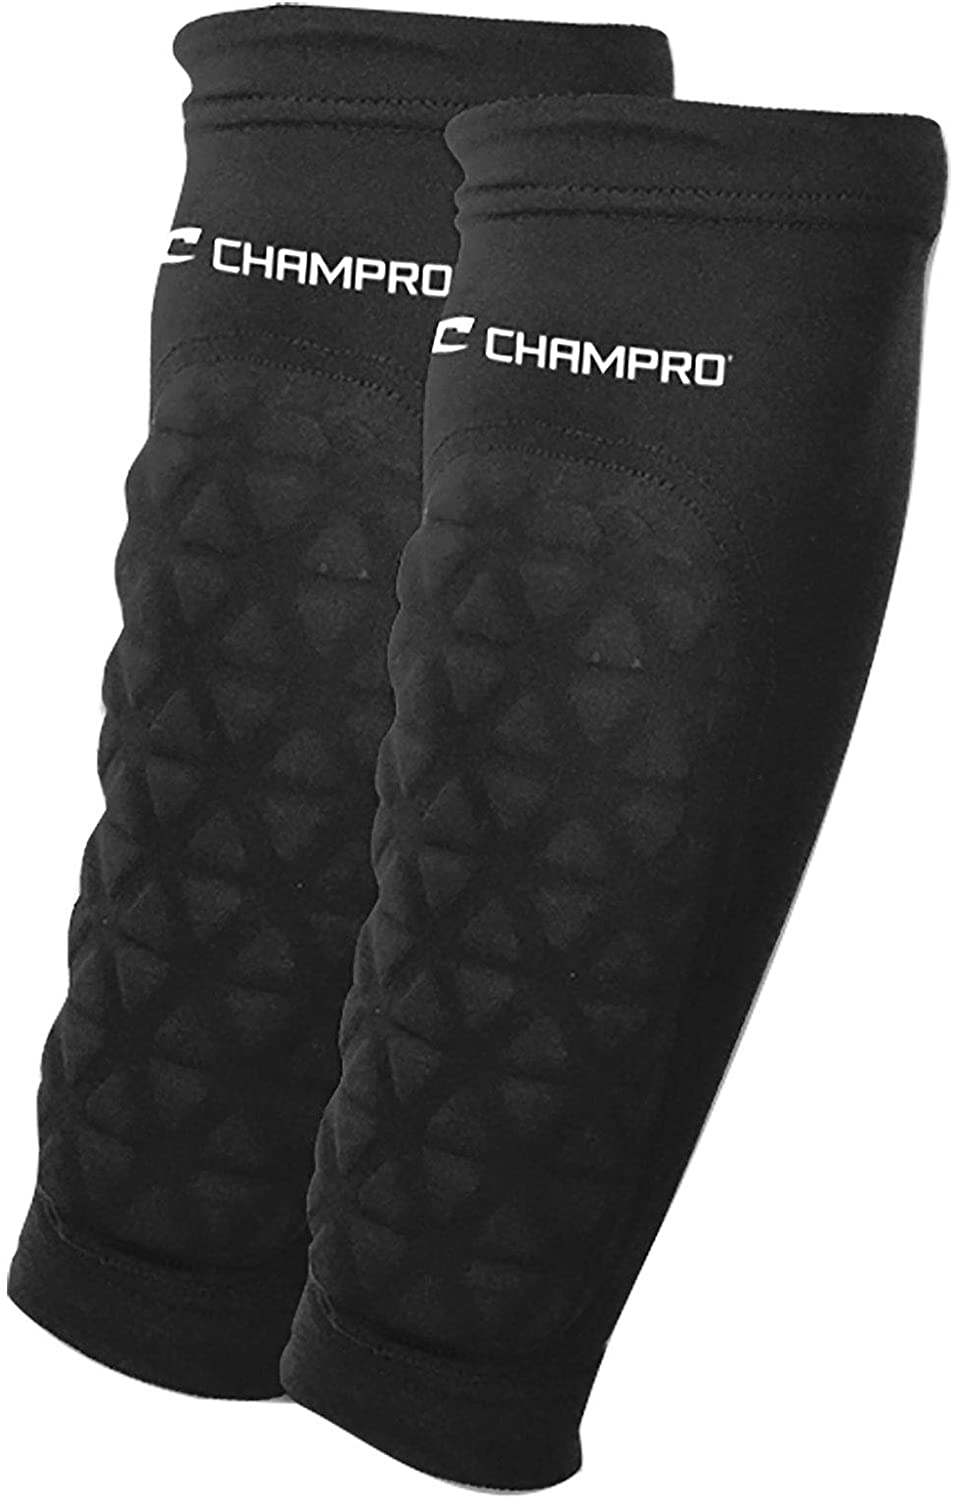 Champro TRI-FLEX Forearm Pad : Football Hand And Arm Pads : Sports & Outdoors